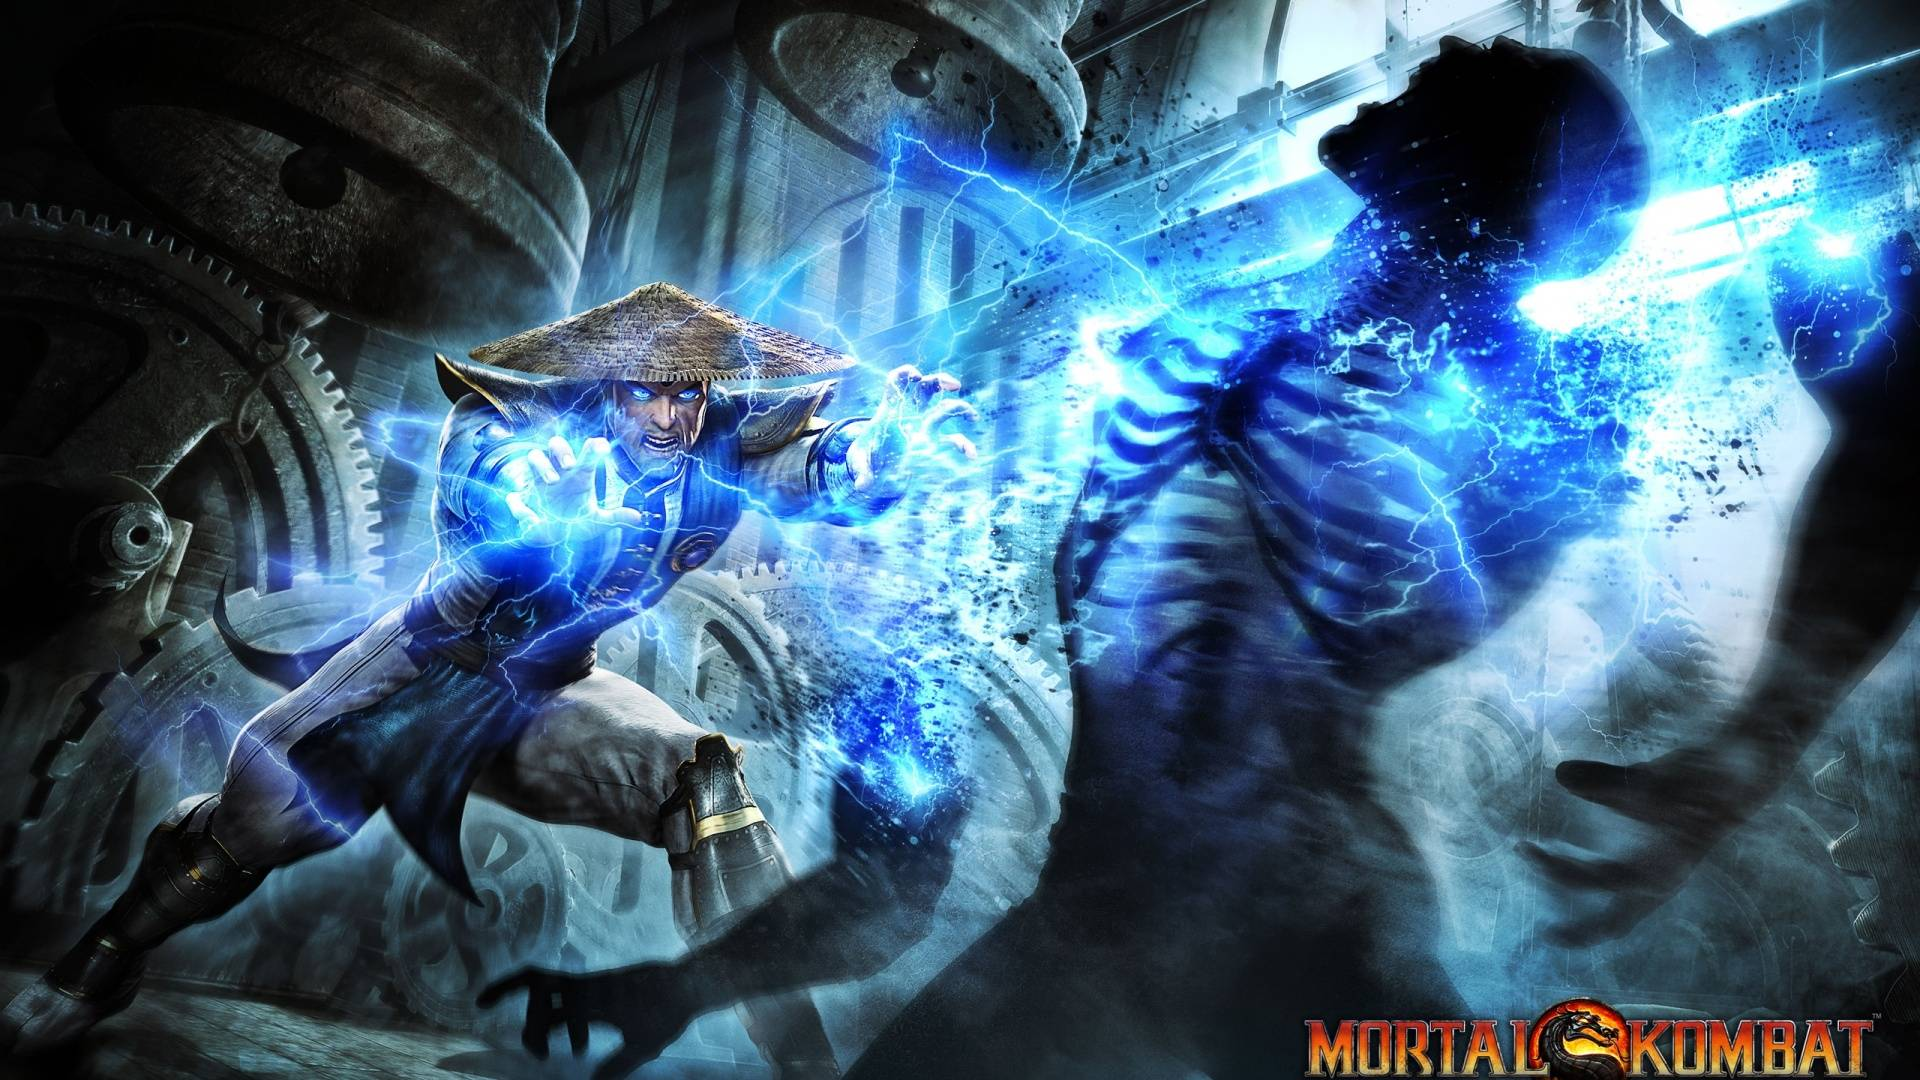 Mortal Kombat X Poster Raiden 1920x1080 Download Hd Wallpaper